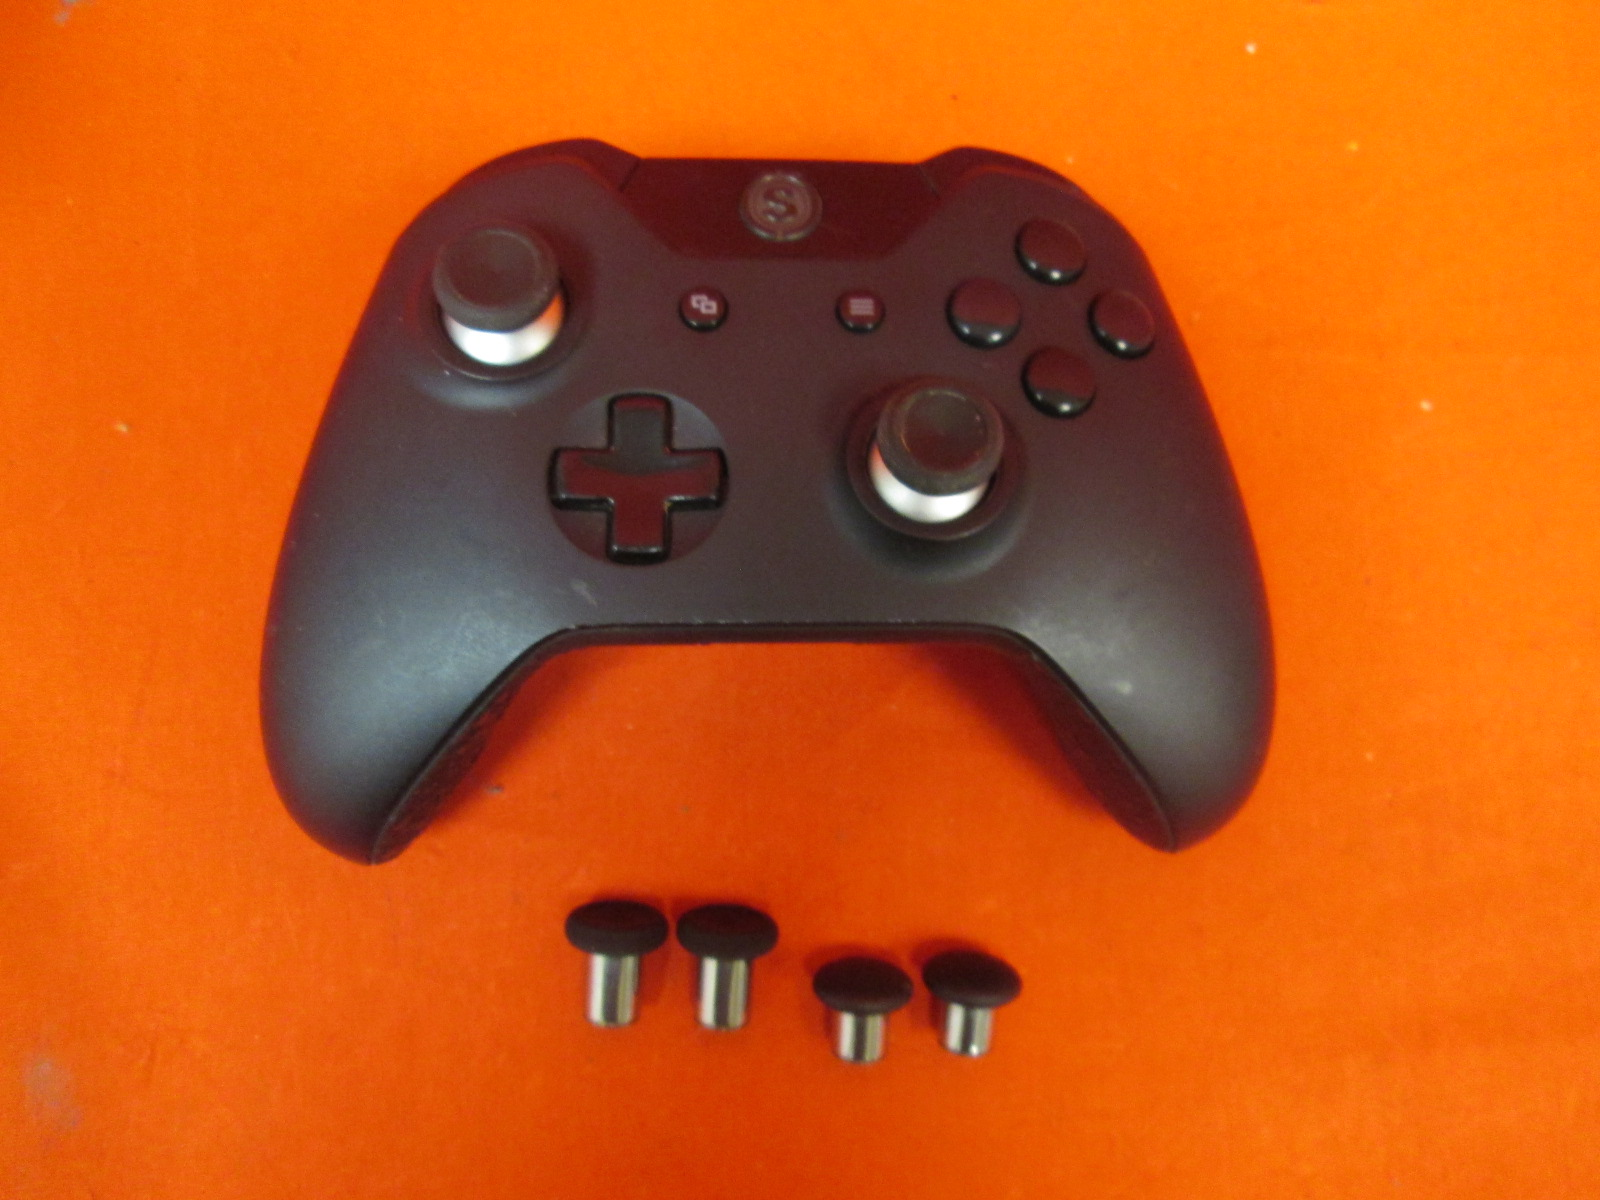 SCUF One Elite Modded Wireless Controller Black For Xbox One